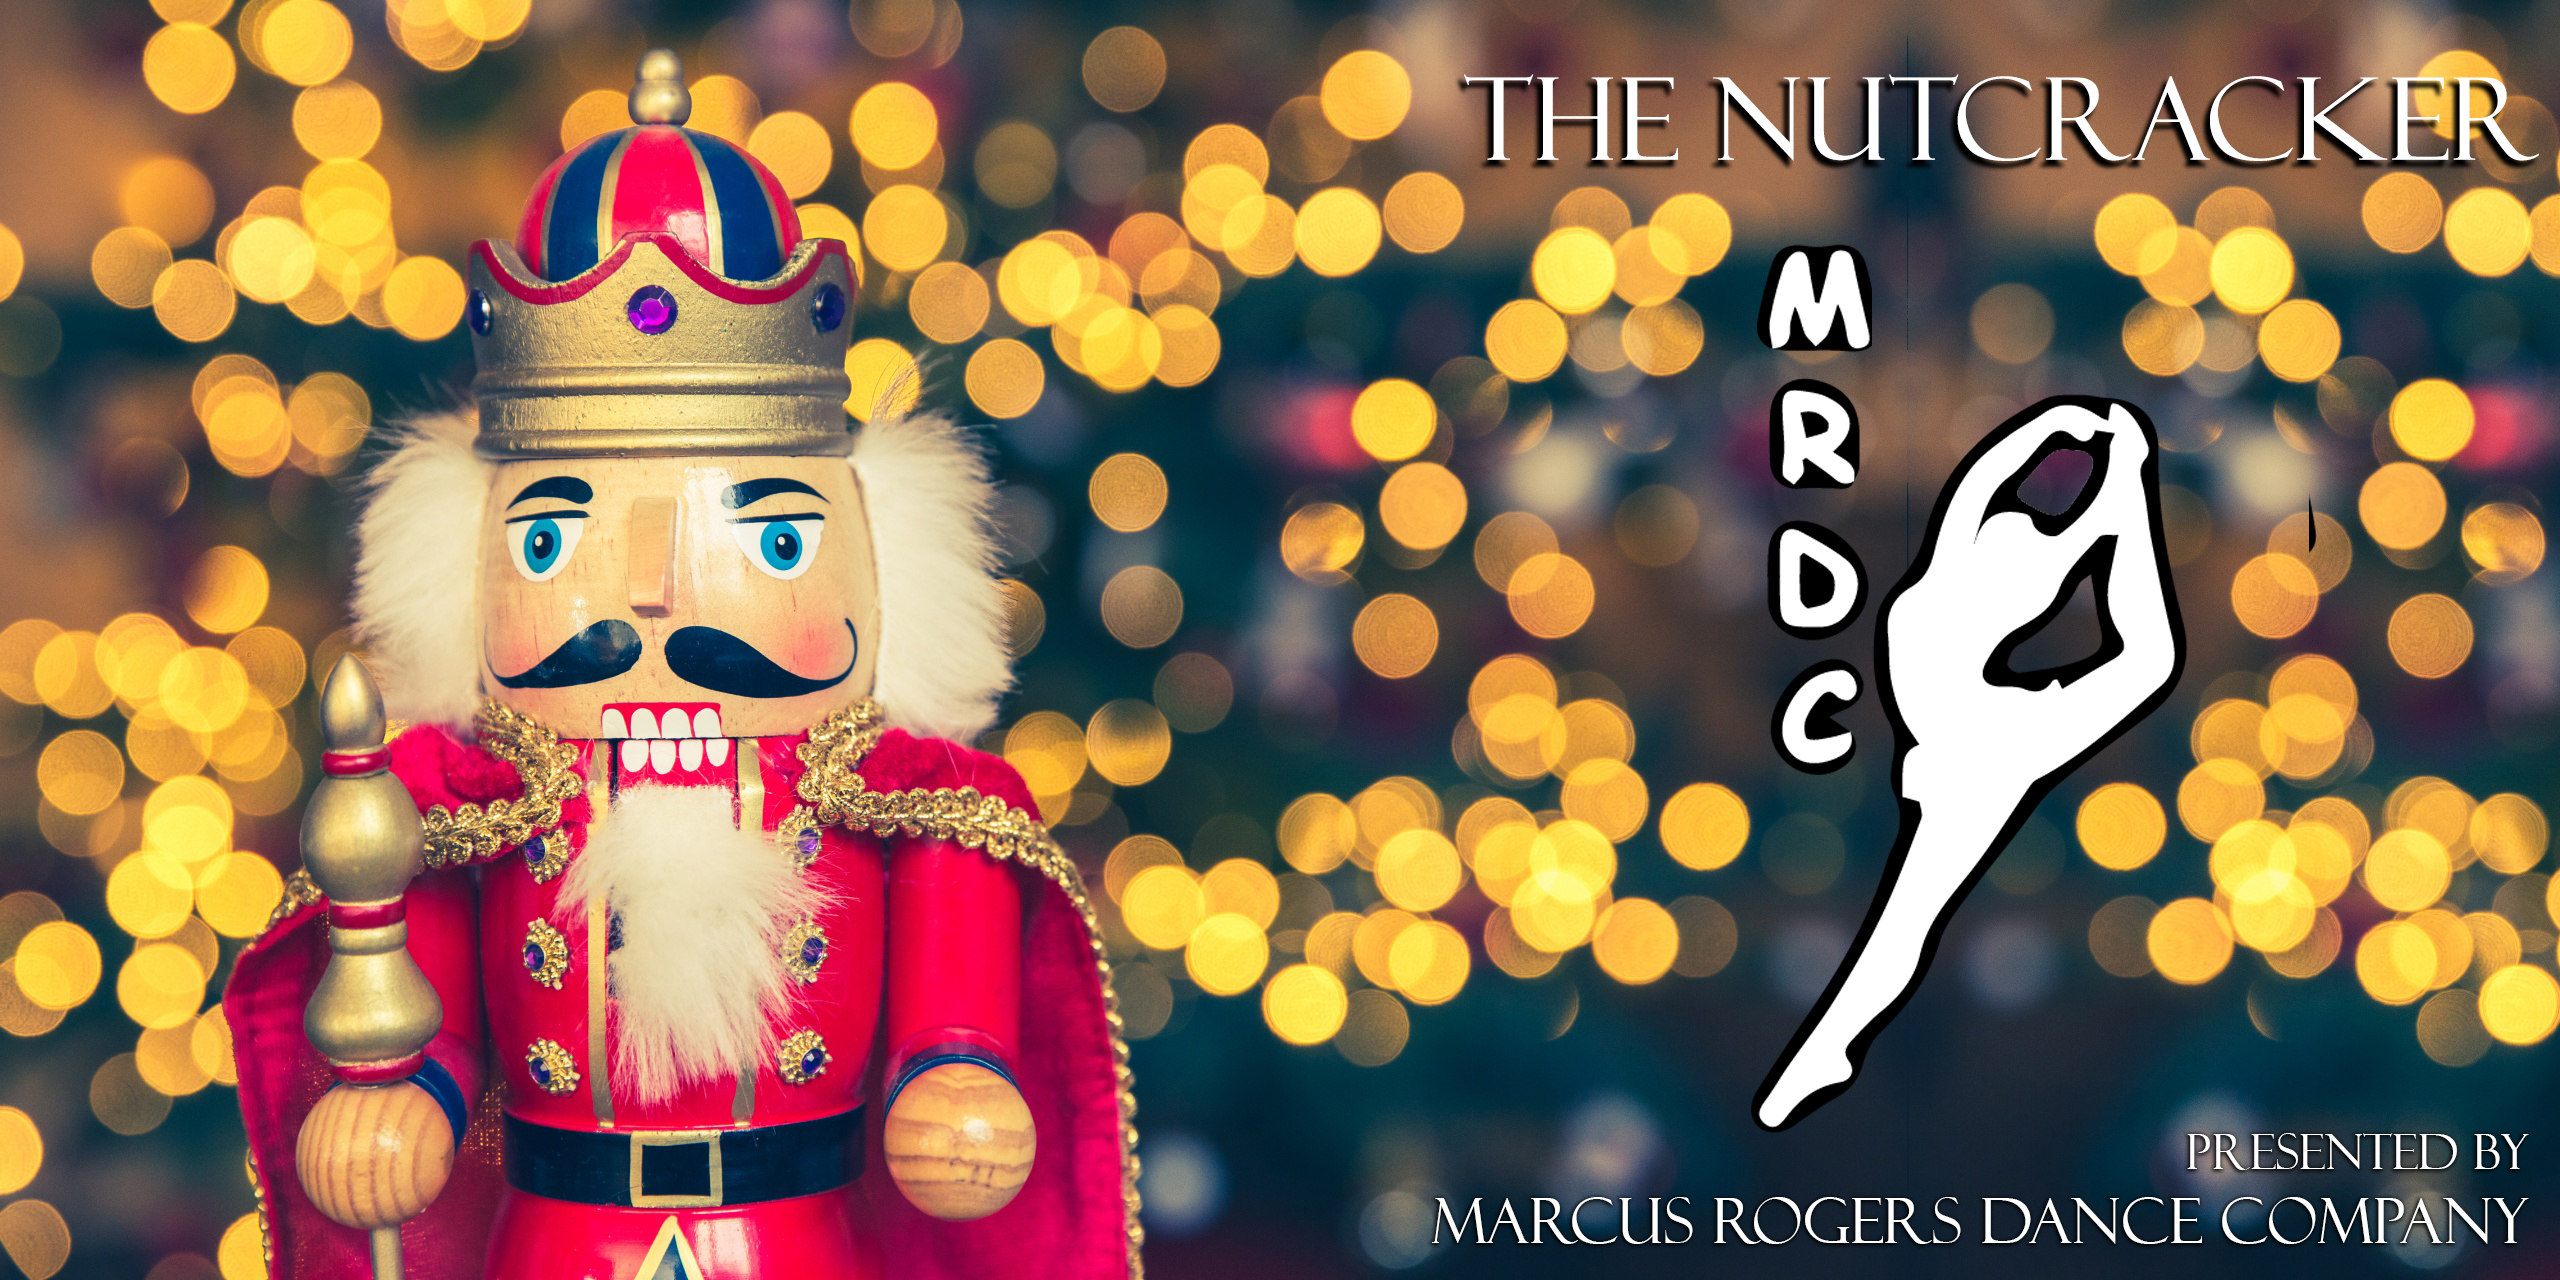 The Nutcracker Ballet Presented By Marcus Rogers Dance Company